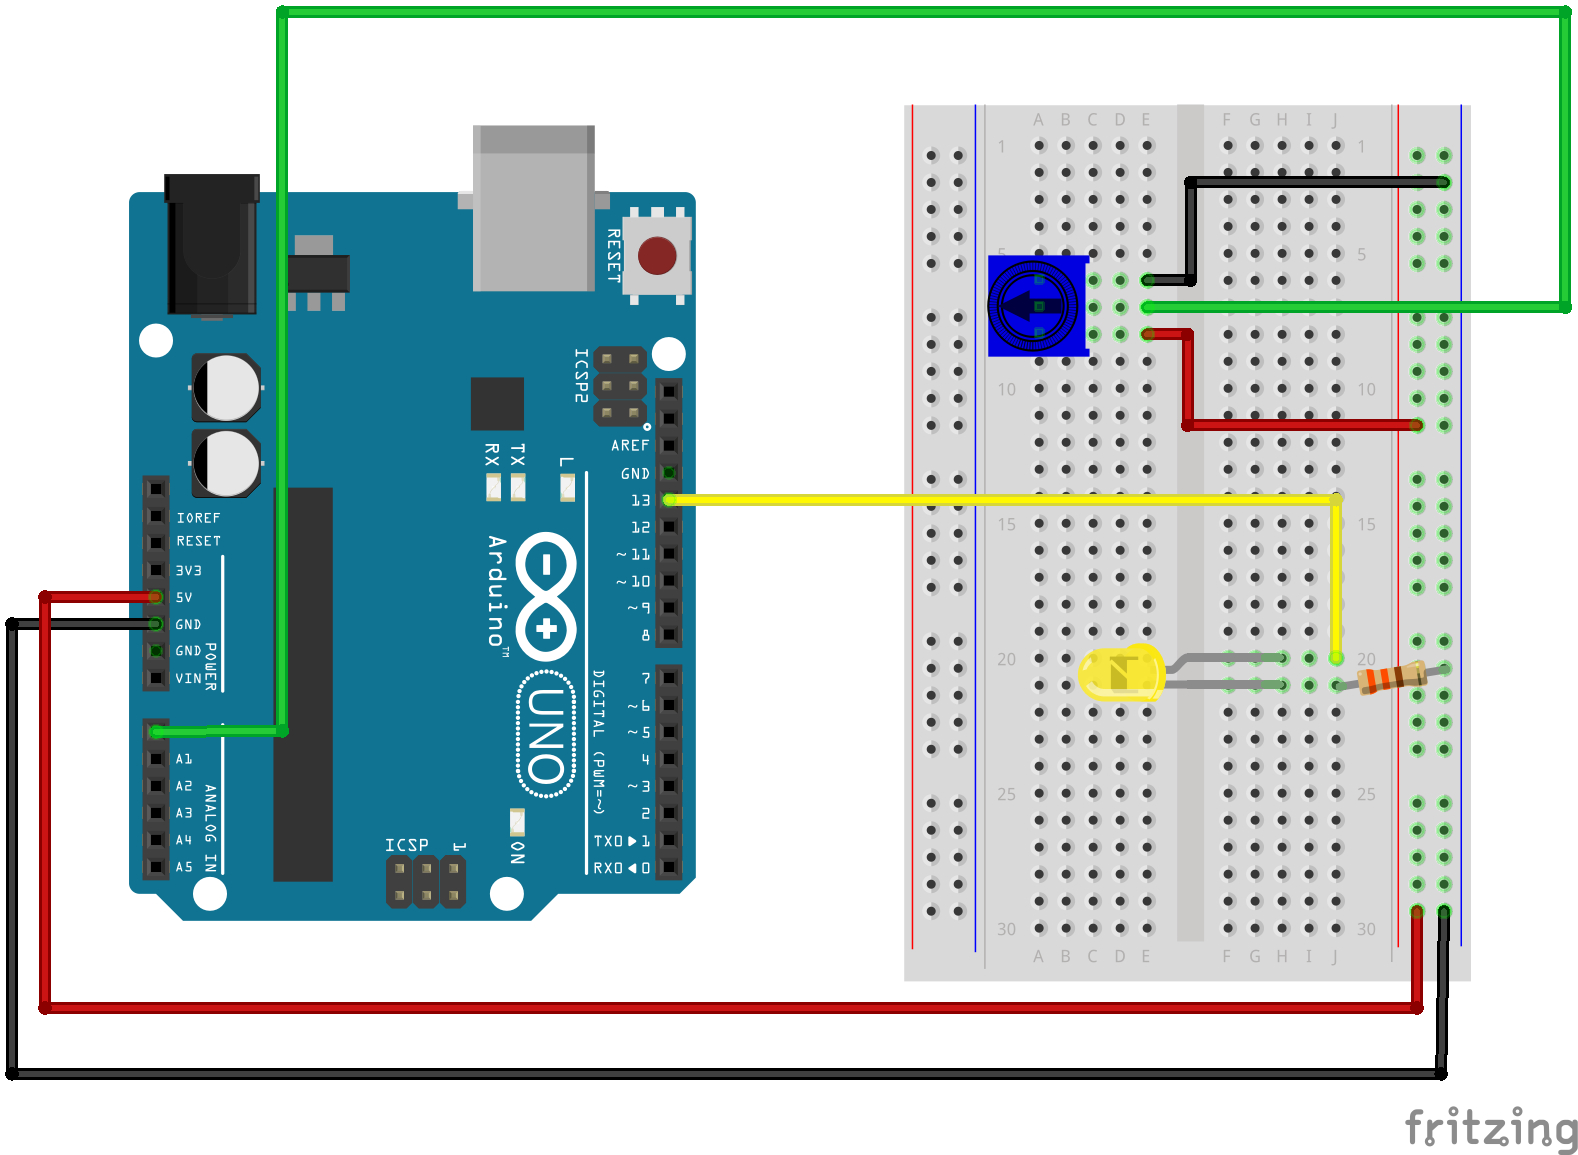 Sik Experiment Guide For Arduino - V3.2 - Learn.sparkfun - Arduino Wiring Diagram